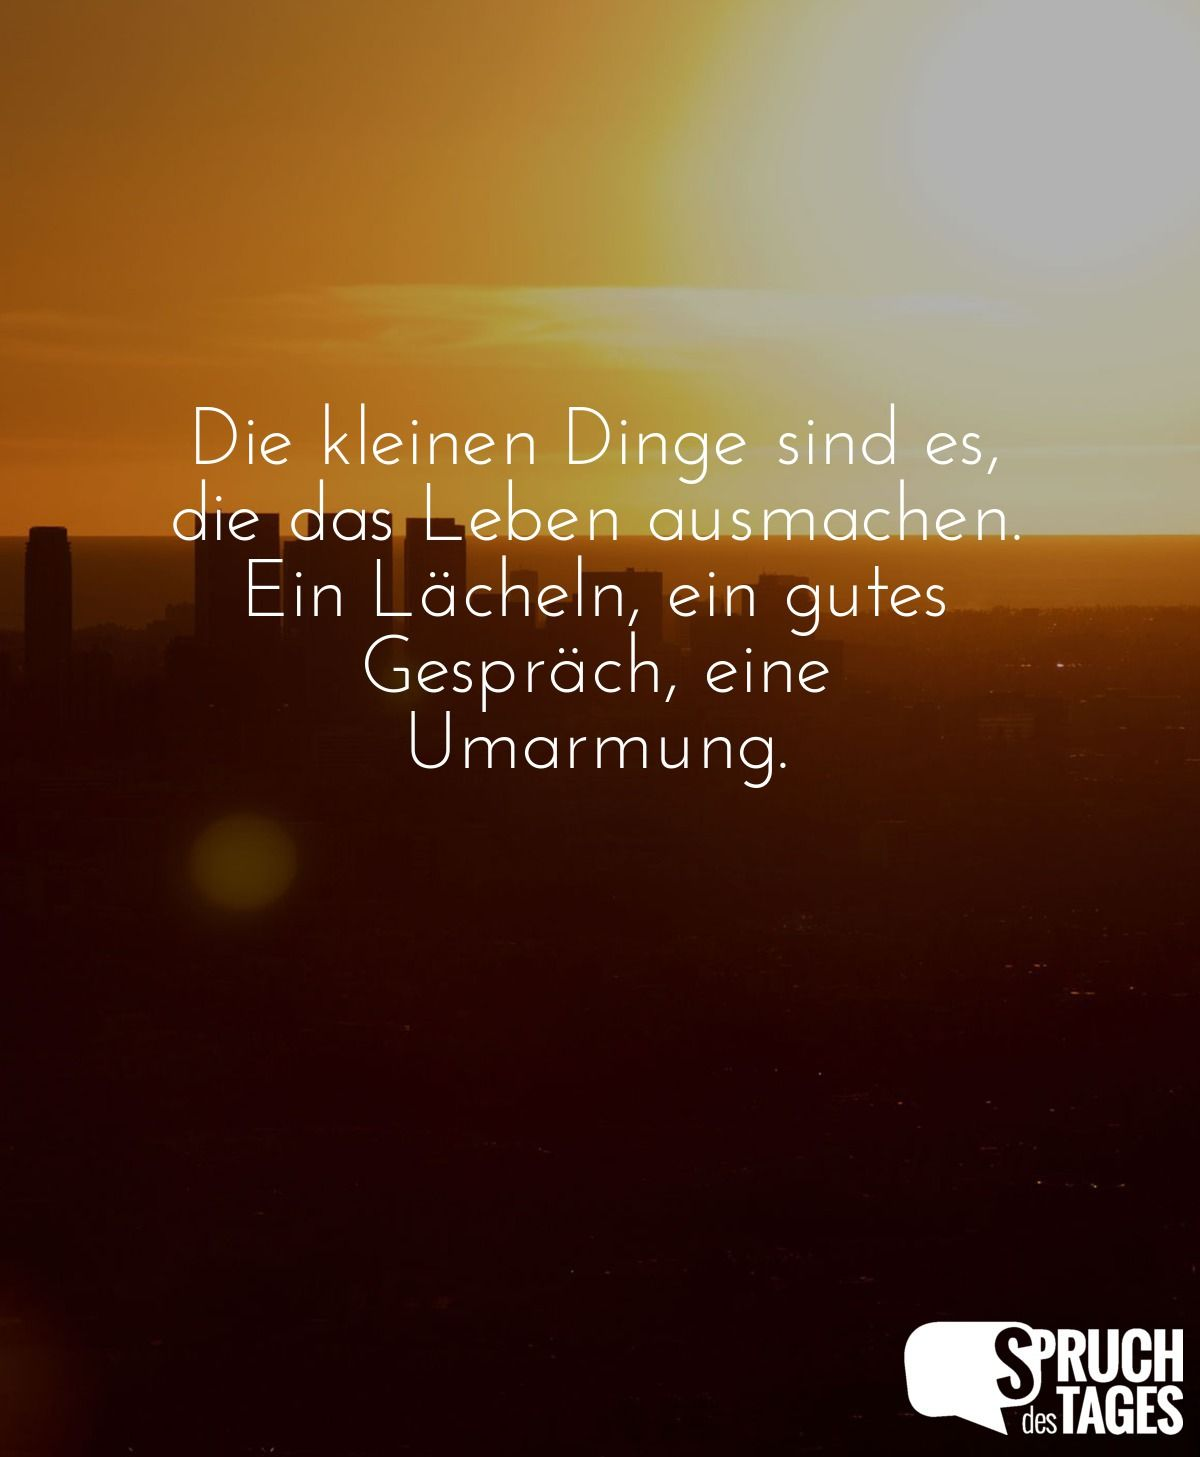 10+ images about quotes on pinterest | deutsch, joyce meyer and